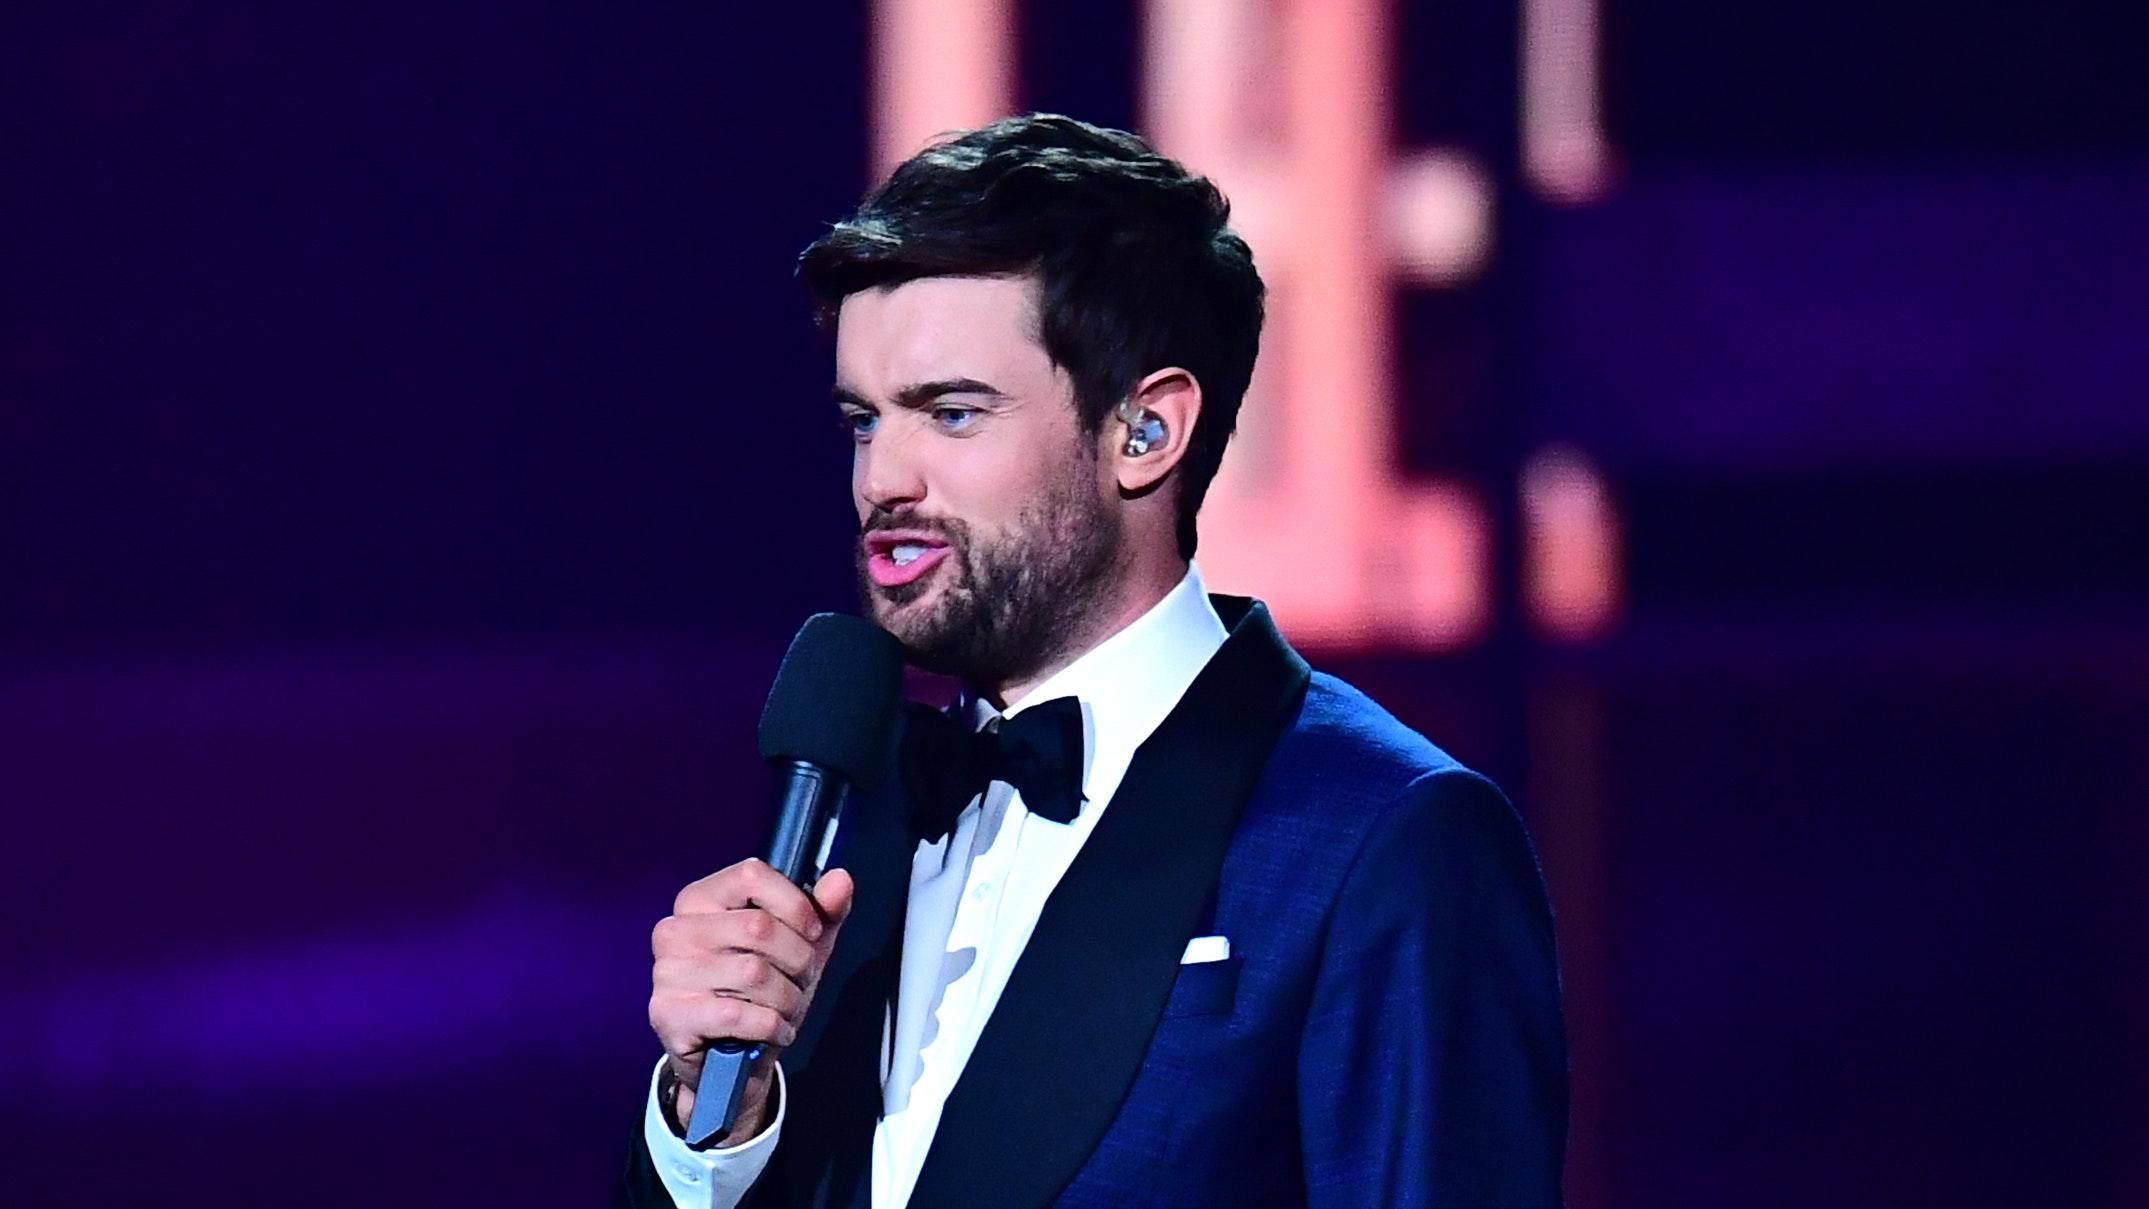 Jack Whitehall to host 'The Graham Norton Show' as Graham Norton takes his first ever break